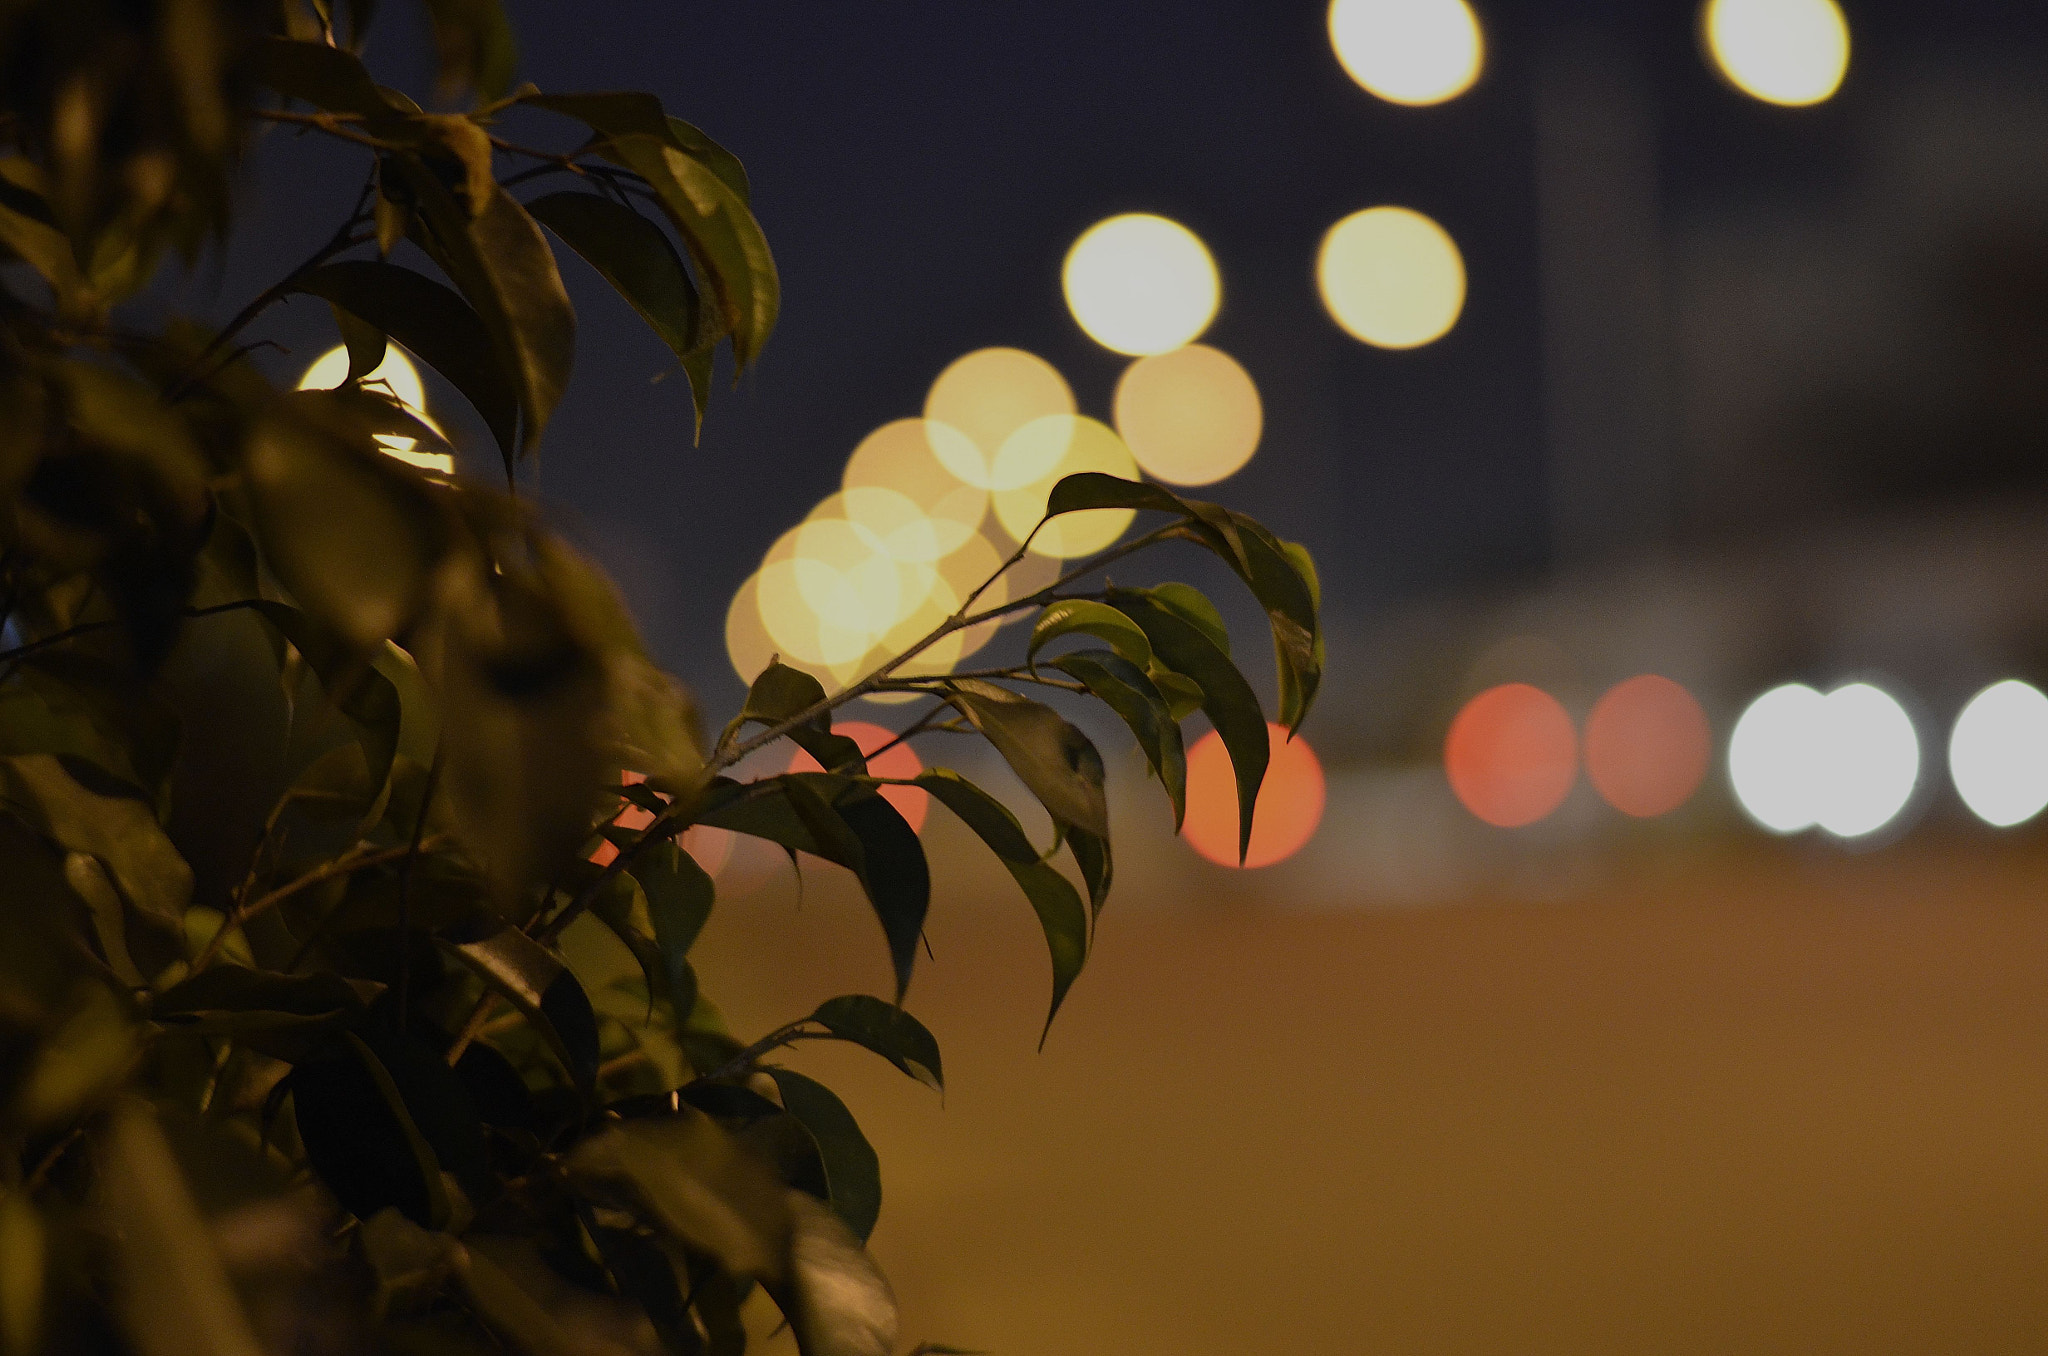 Photograph Light Night by Dr. Sujeeth Kumar on 500px